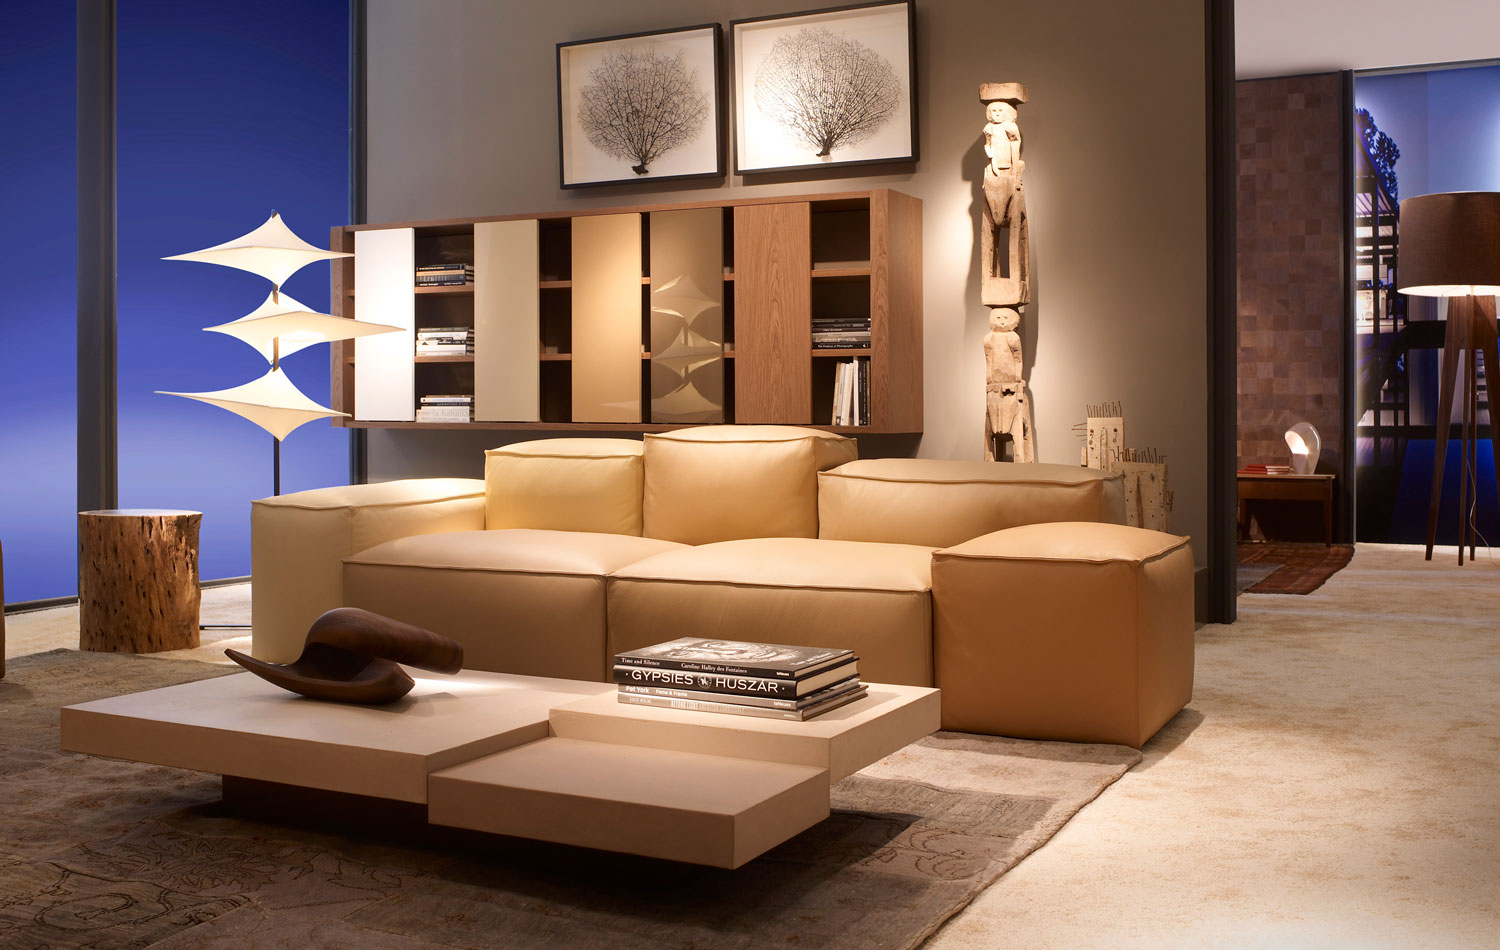 Living Room Inspiration 120 Modern Sofas By Roche Bobois Part 3 3 Architecture Design